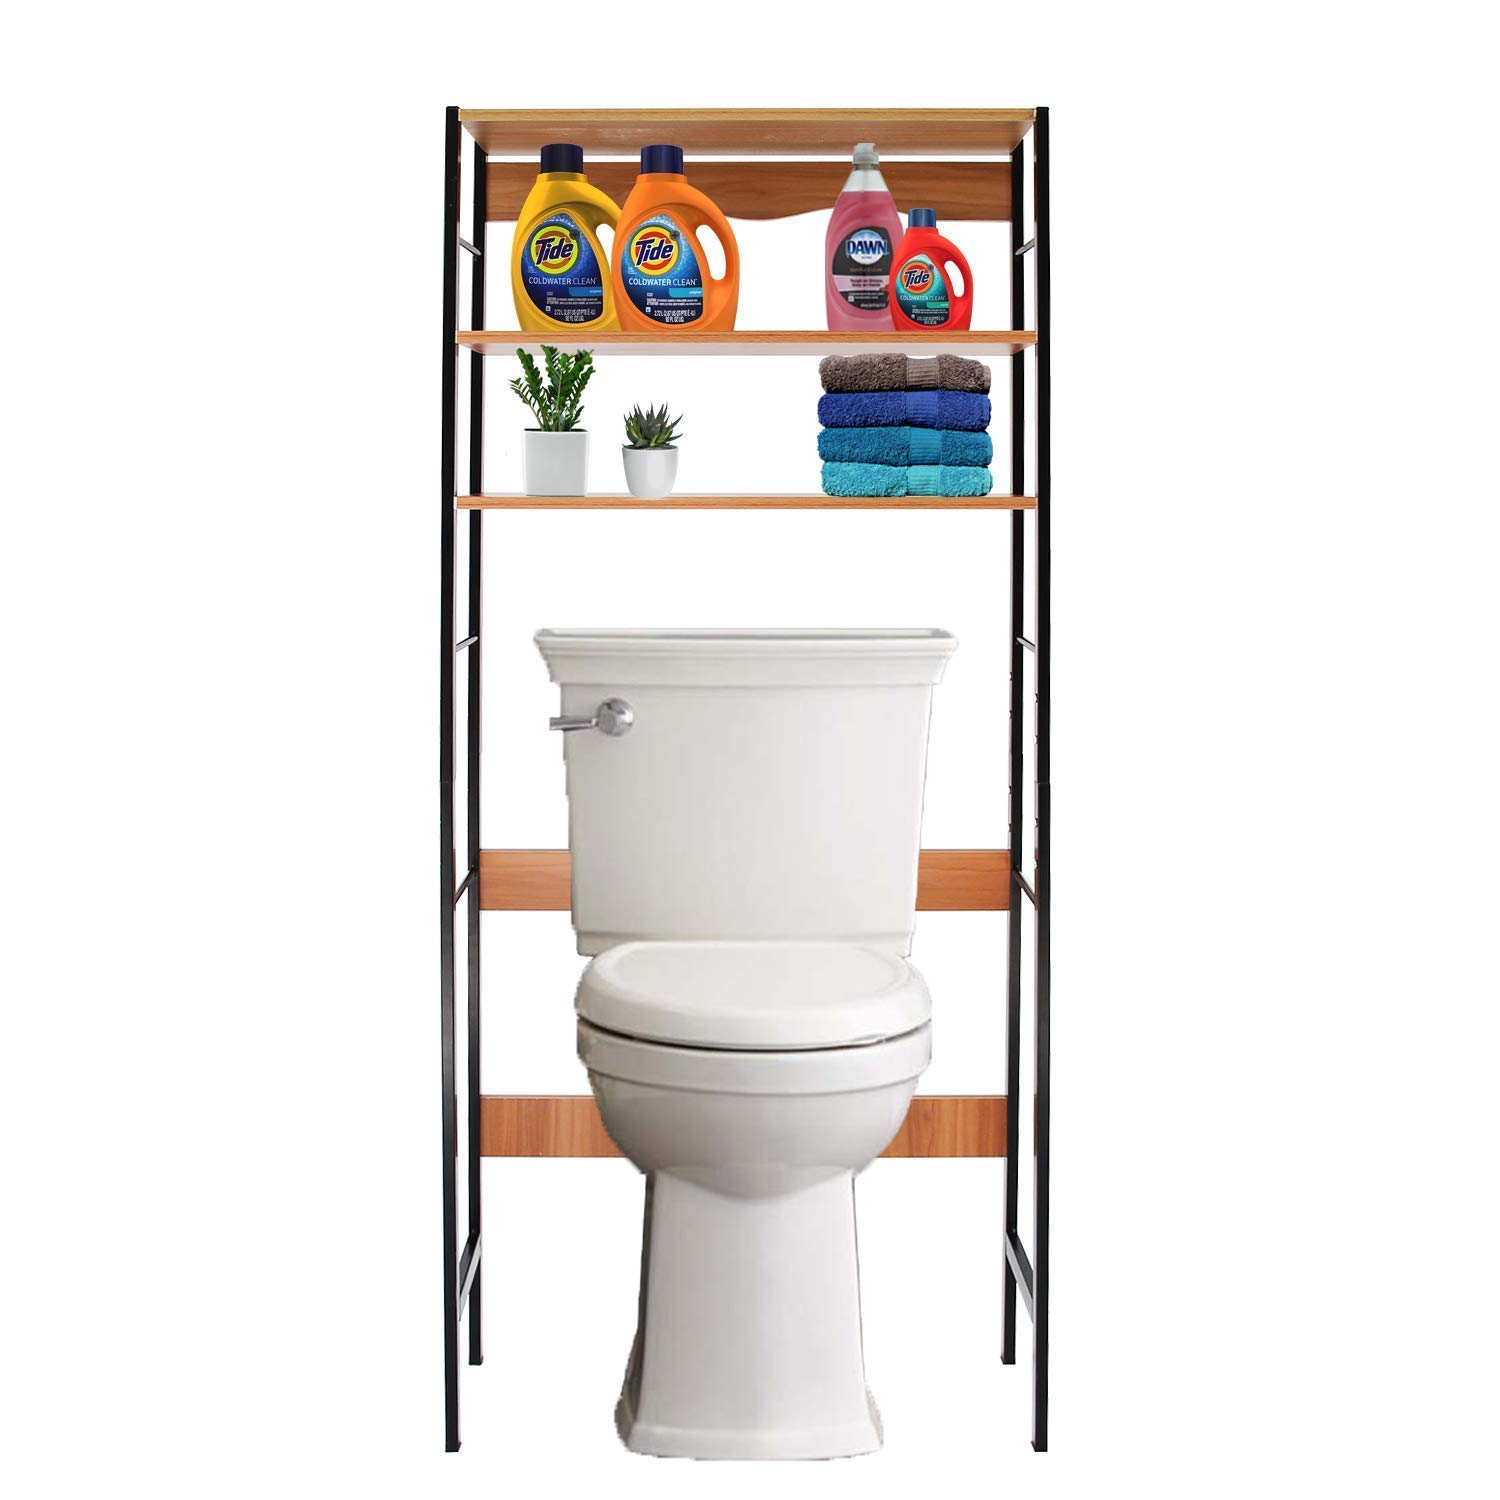 Jerry & Maggie - Bathroom Organizer Over The Toilet Rack 3 Tier Accessory Sets Home Livingroom Space Saver Storage Cabinet with Steel Support Frame and Wood Board by Jerry & Maggie